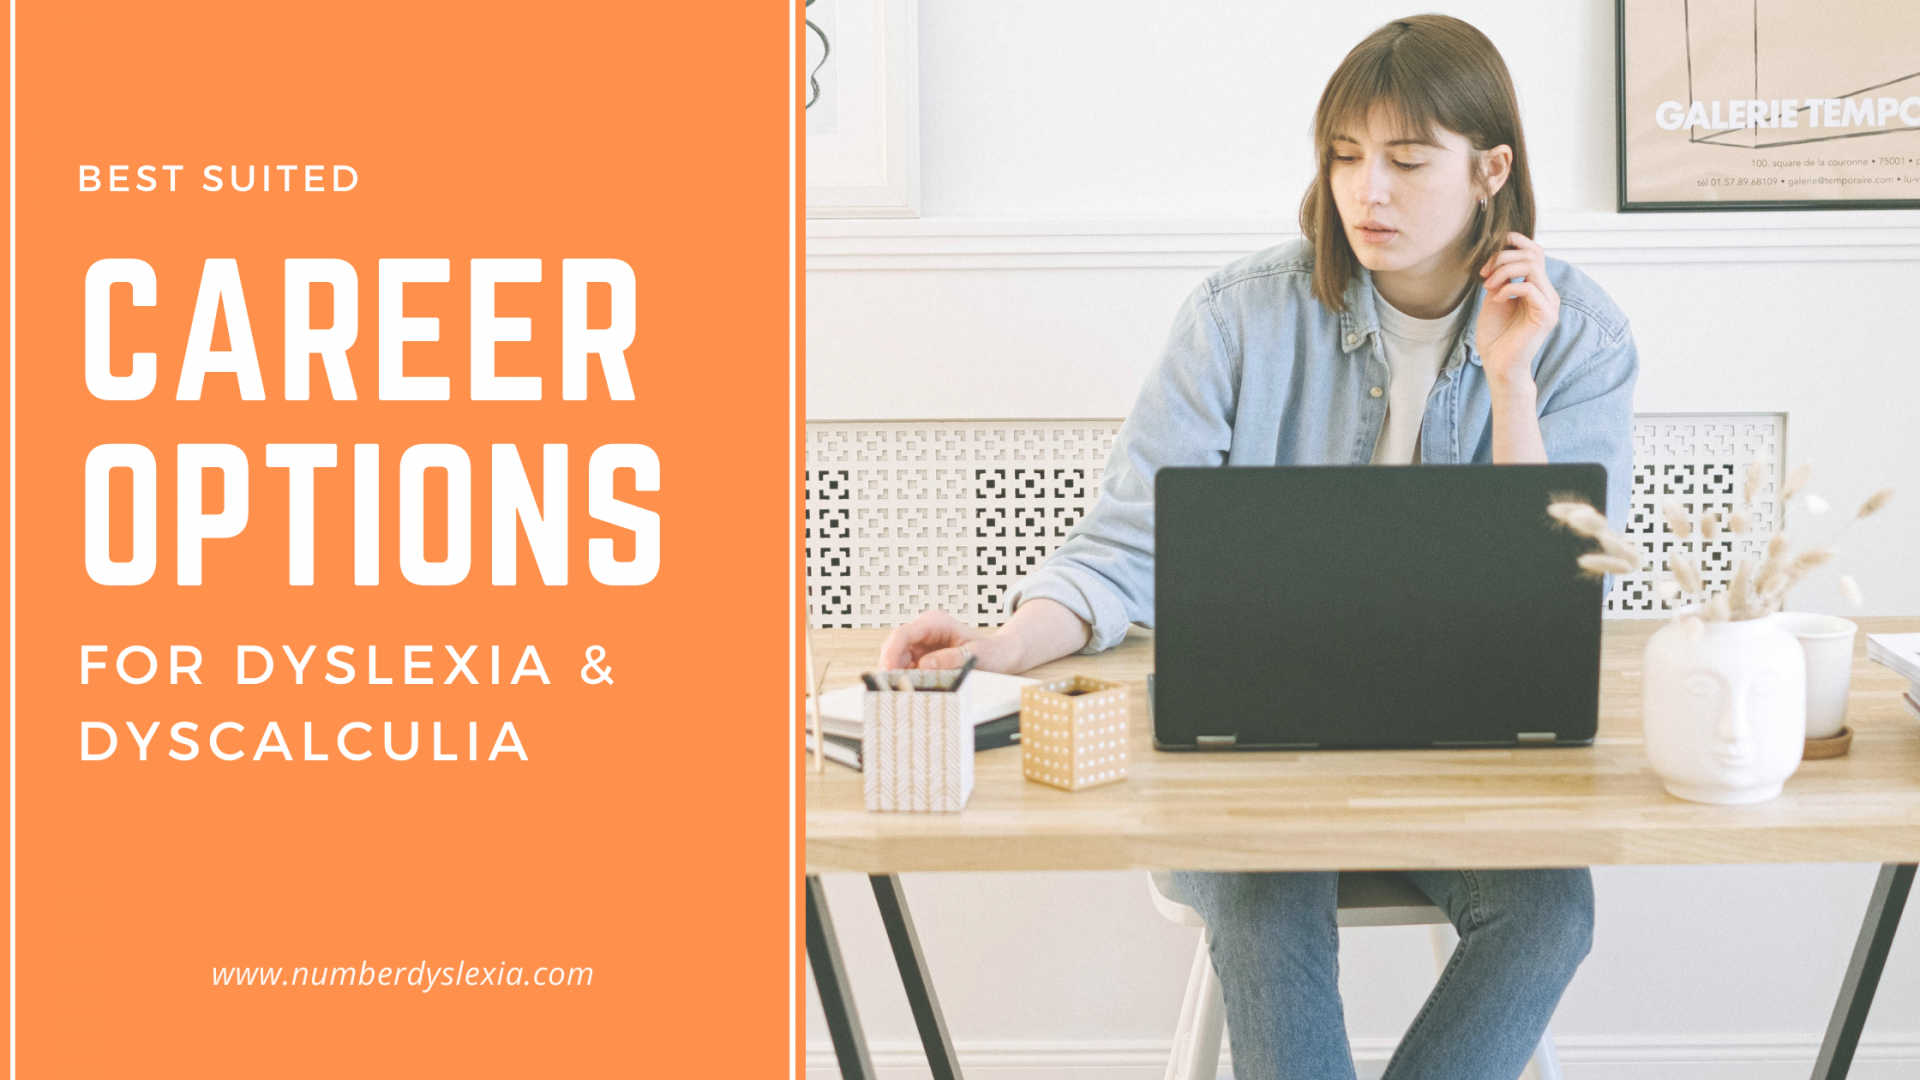 Best suited career options and jobs for dyslexia and dyscalculia